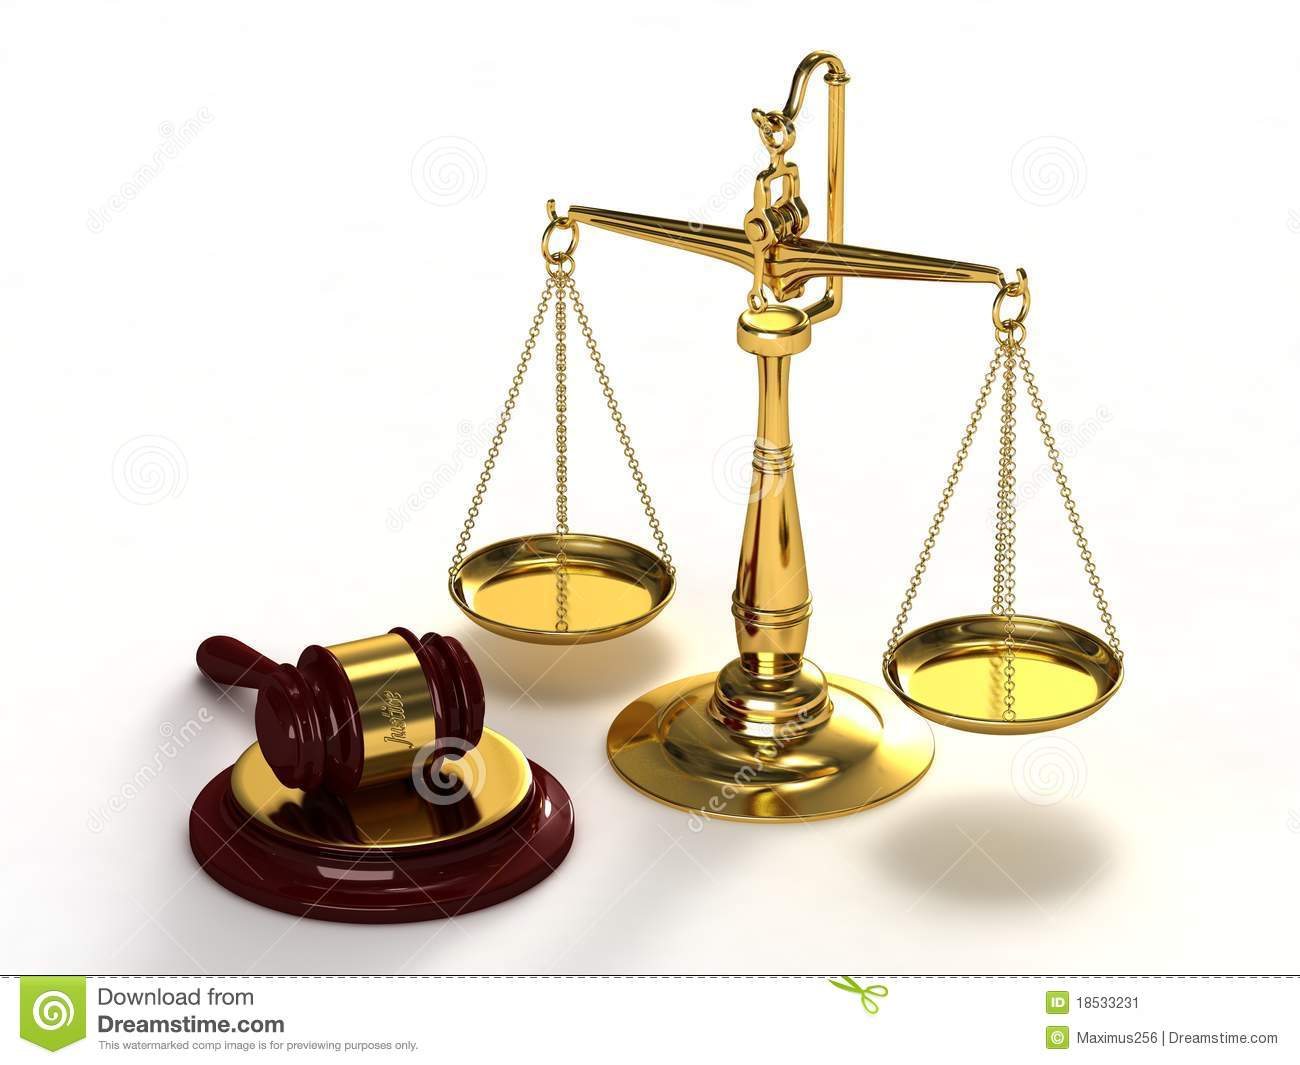 law scale and gavel - photo #28